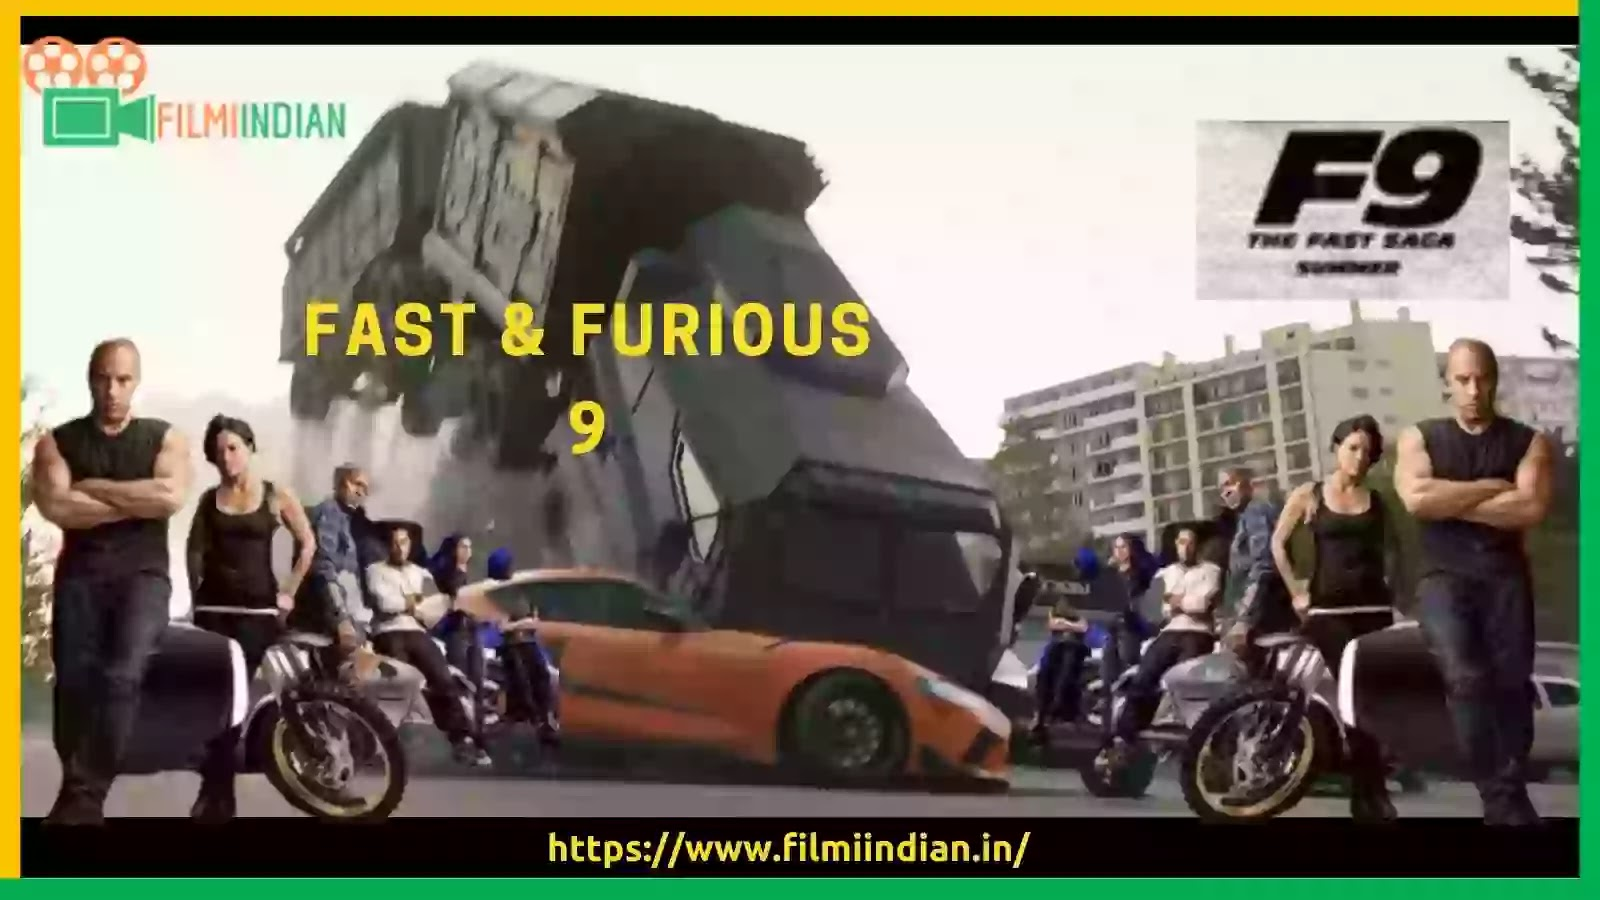 Fast and furious 9 : F9 (2020) Trailer : Best and Honest Review